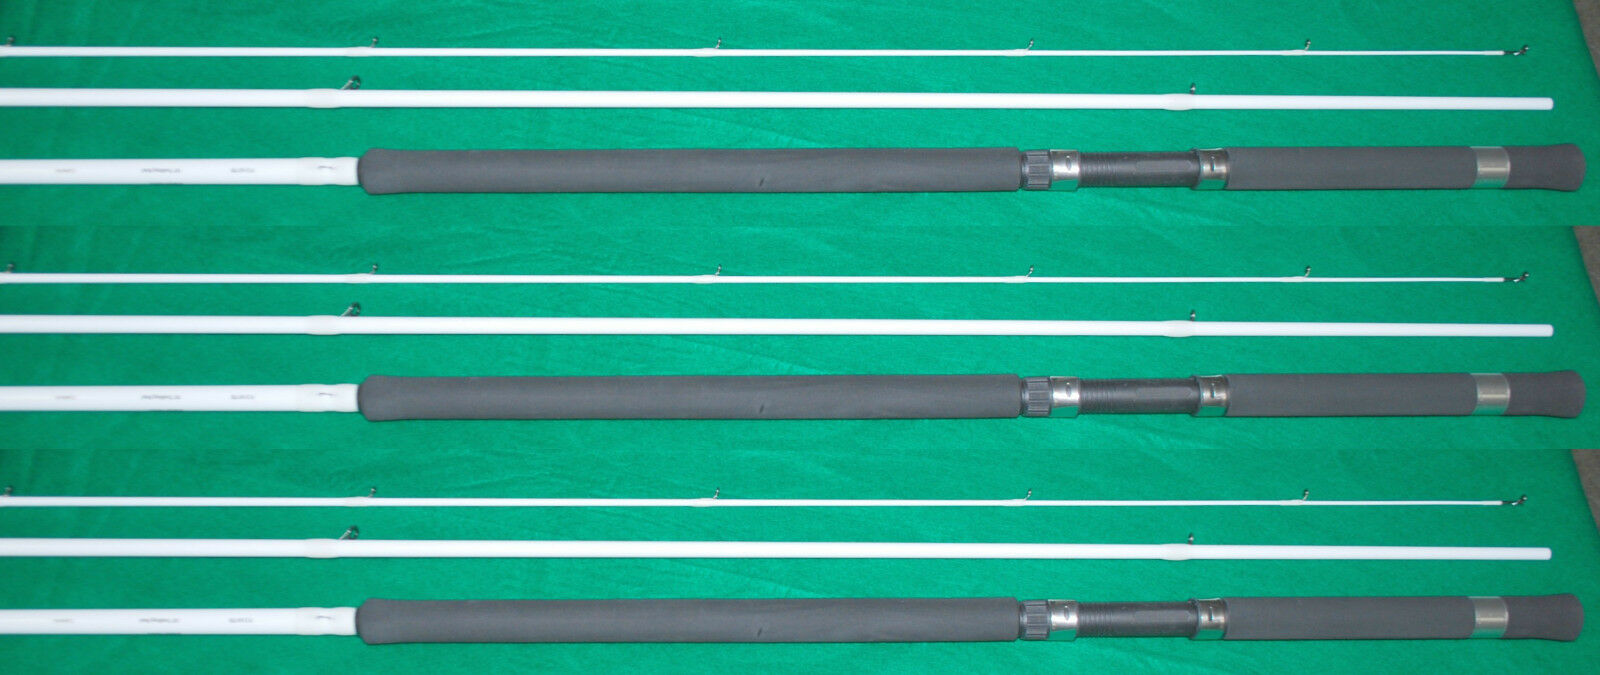 3EA DENALI NEW 18' TROLLING RODS NEW PRYME SERIES P2161TR (CRAPPIE POLE)